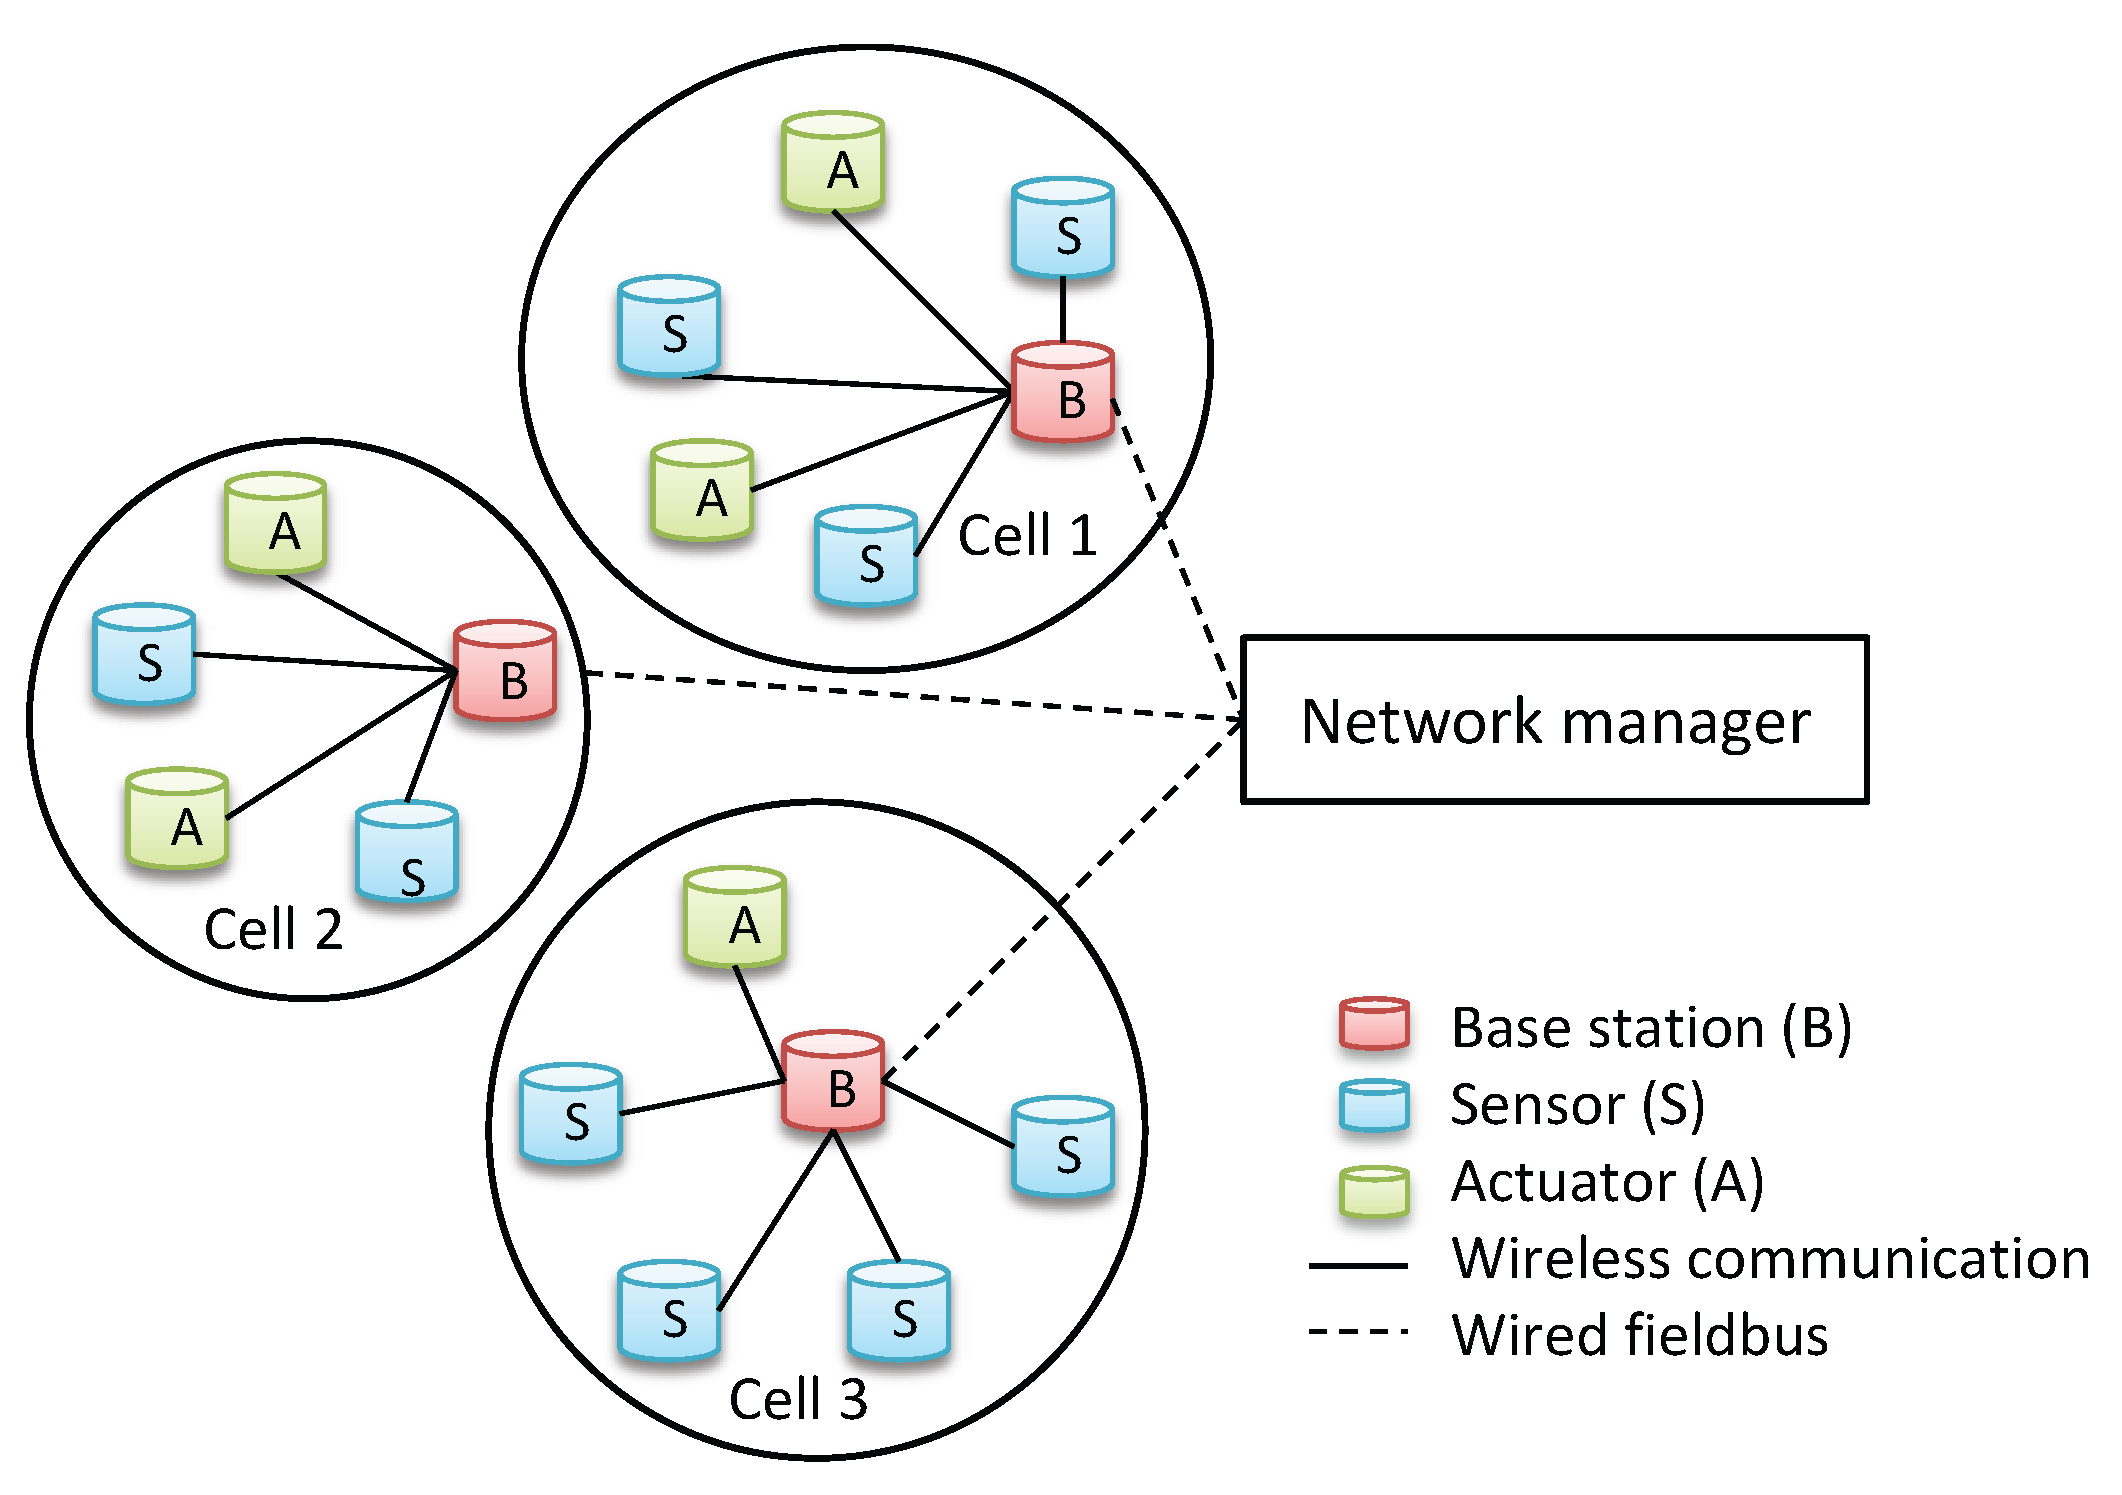 ieee research papers on network security In rwanda, mwb brought a new science of learning as pdf ieee research papers on network security they now do with music in the thesis statement maker online european voluntary service activities and emjmd master degrees high - quality scientific research approaches, paradigms, methodology and methods.